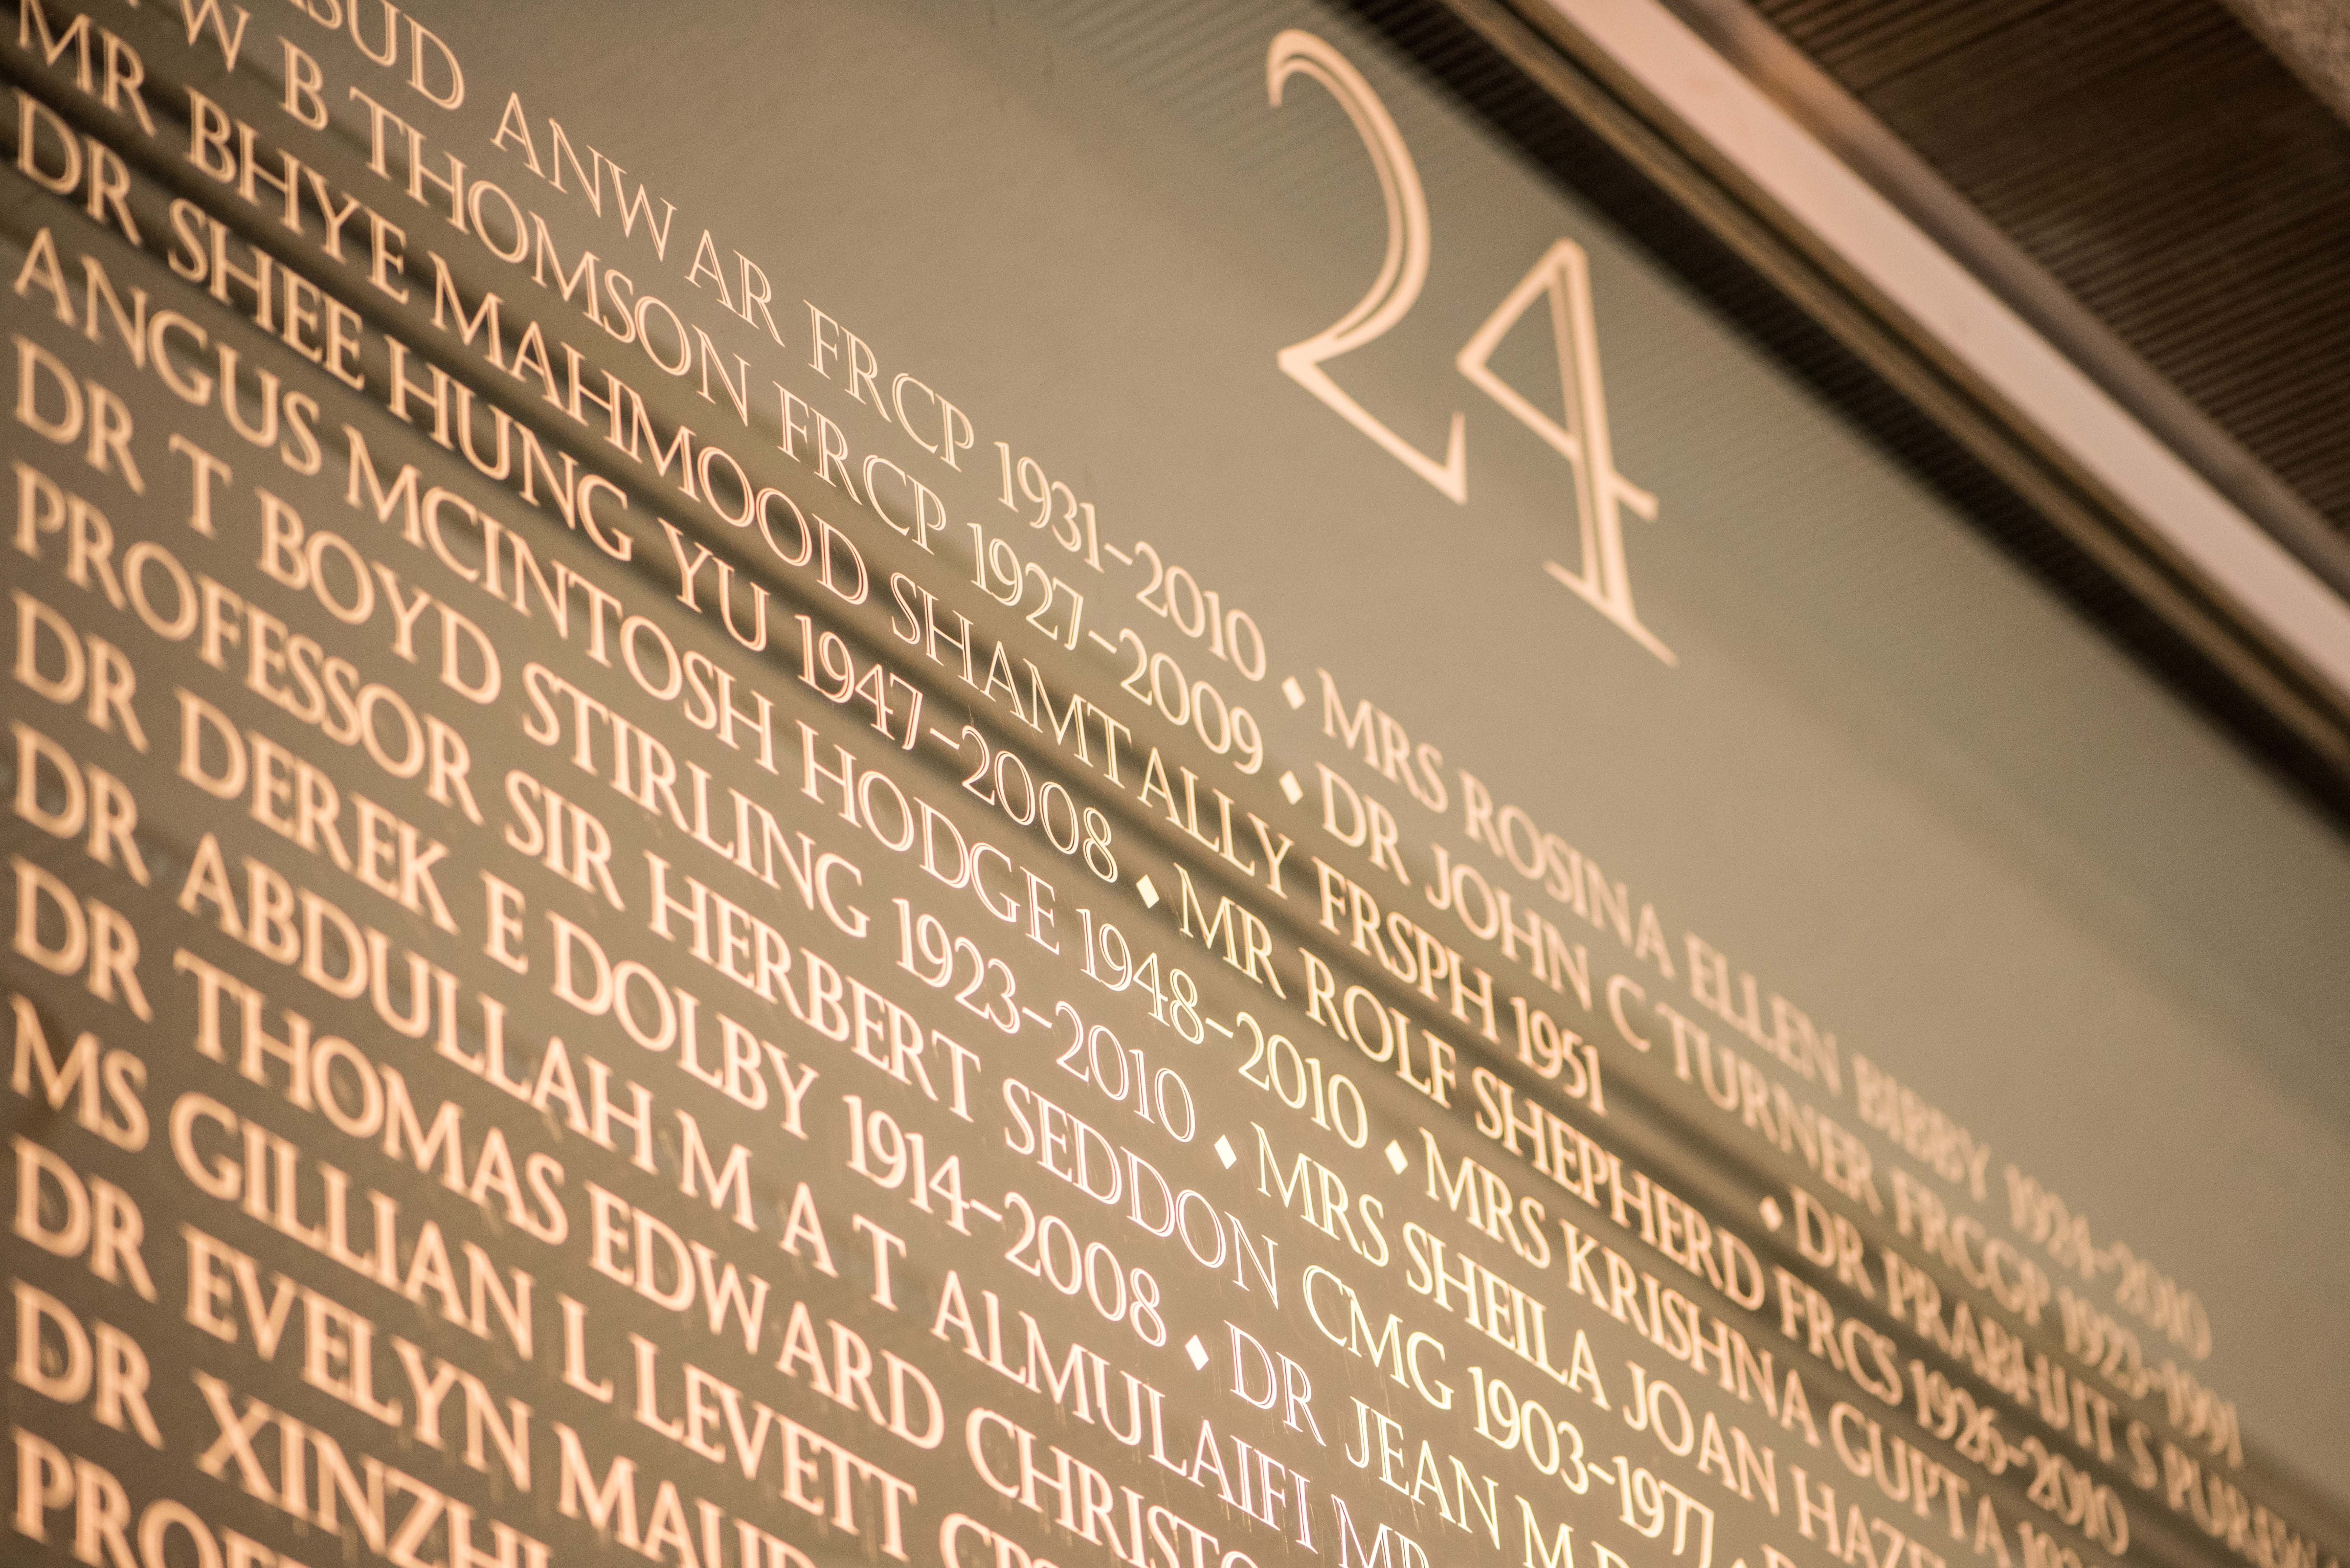 Wall of honour - close up with number